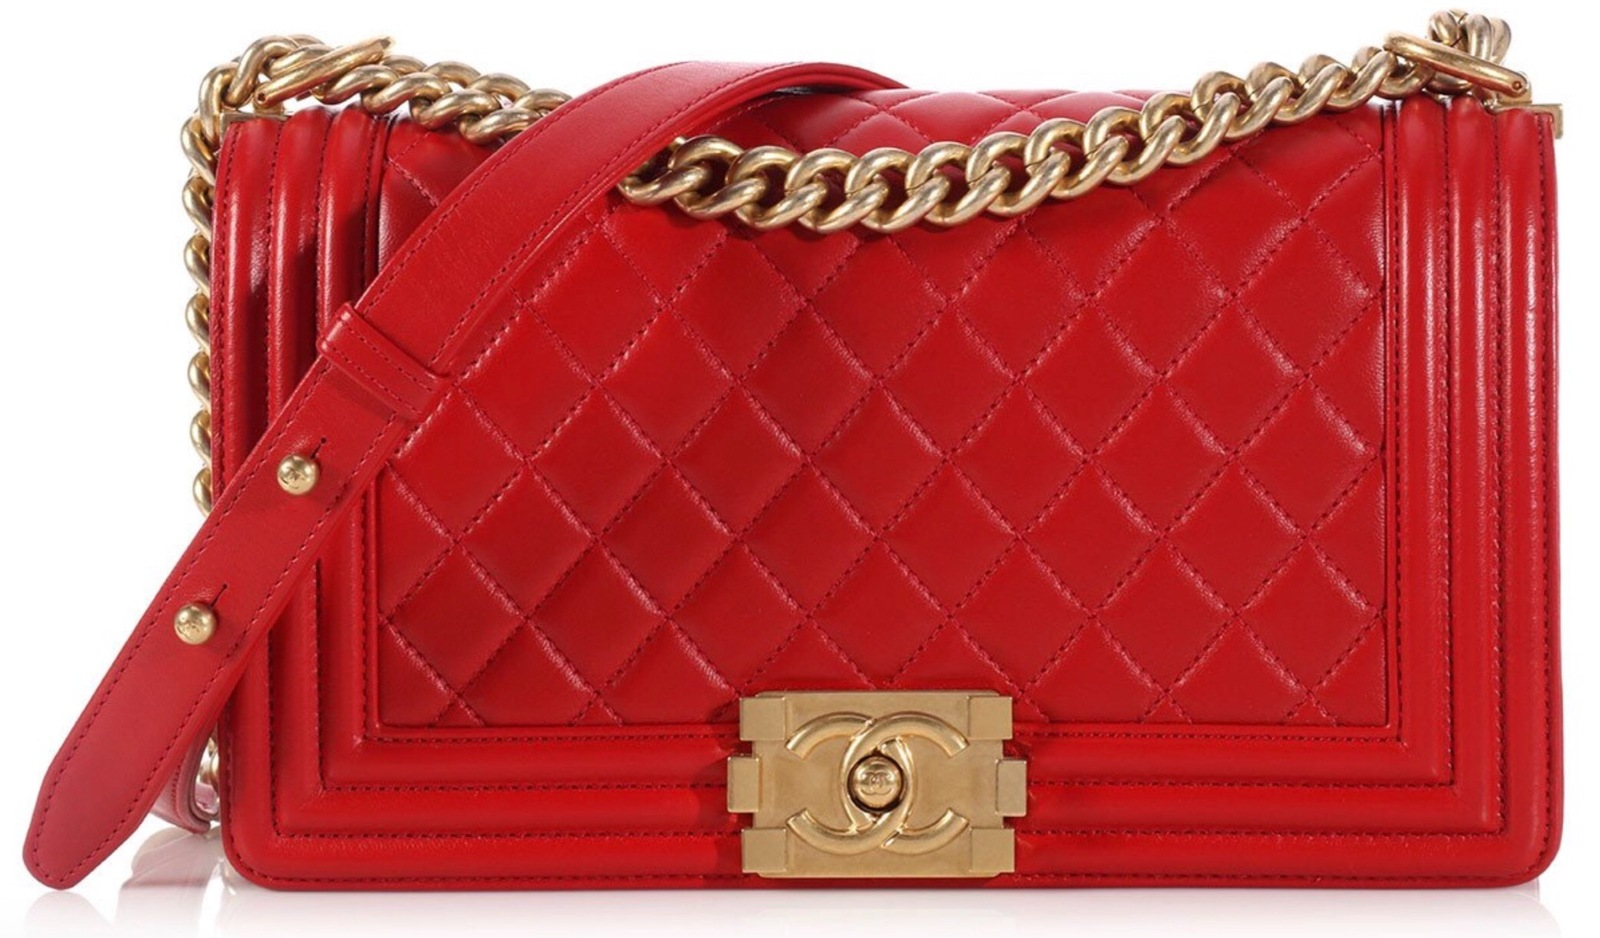 100% AUTHENTIC CHANEL RED QUILTED LAMBSKIN MEDIUM BOY FLAP BAG GHW